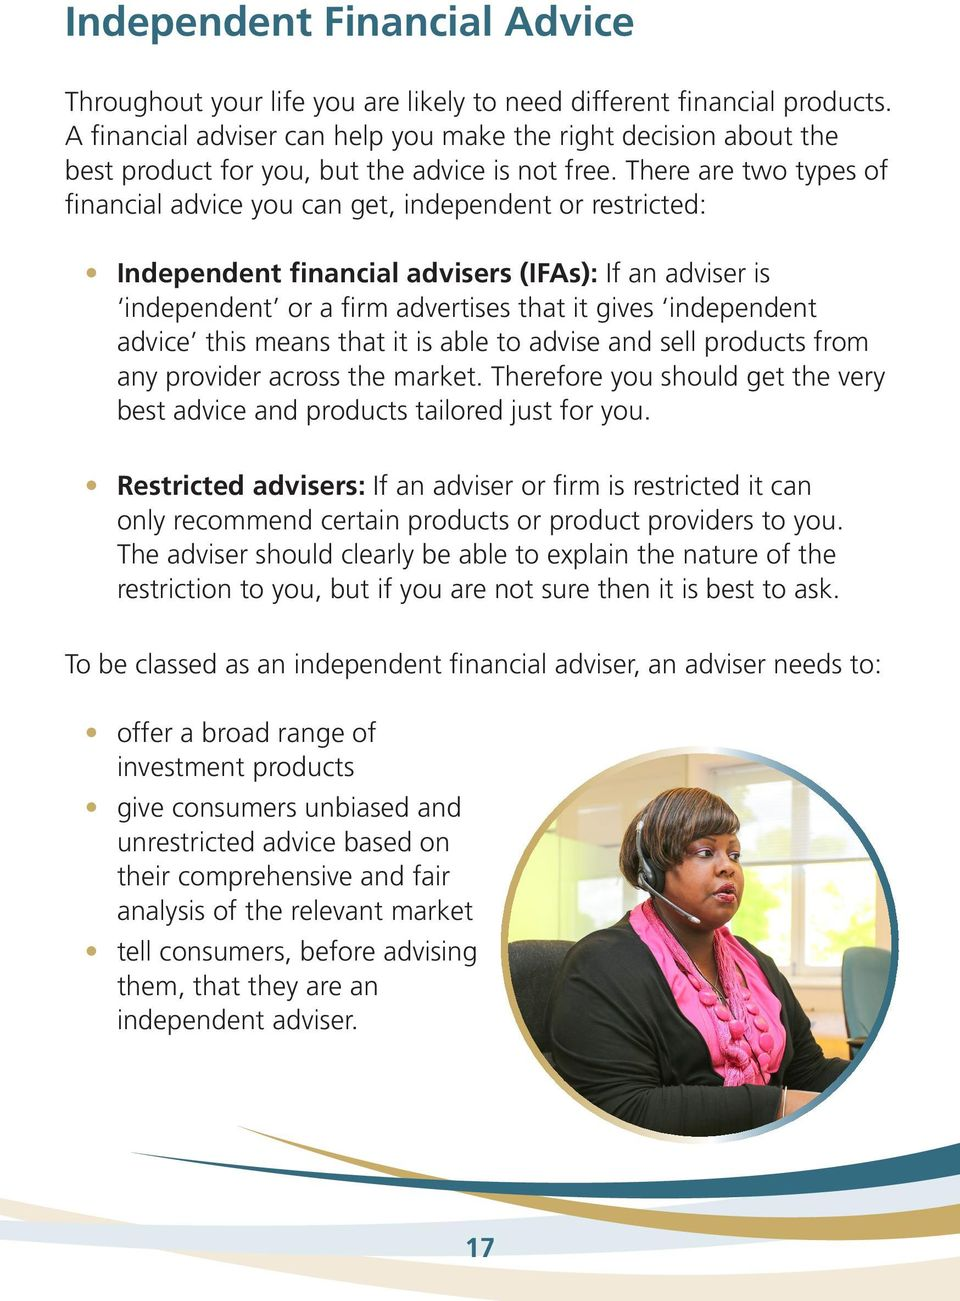 There are two types of financial advice you can get, independent or restricted: Independent financial advisers (IFAs): If an adviser is independent or a firm advertises that it gives independent